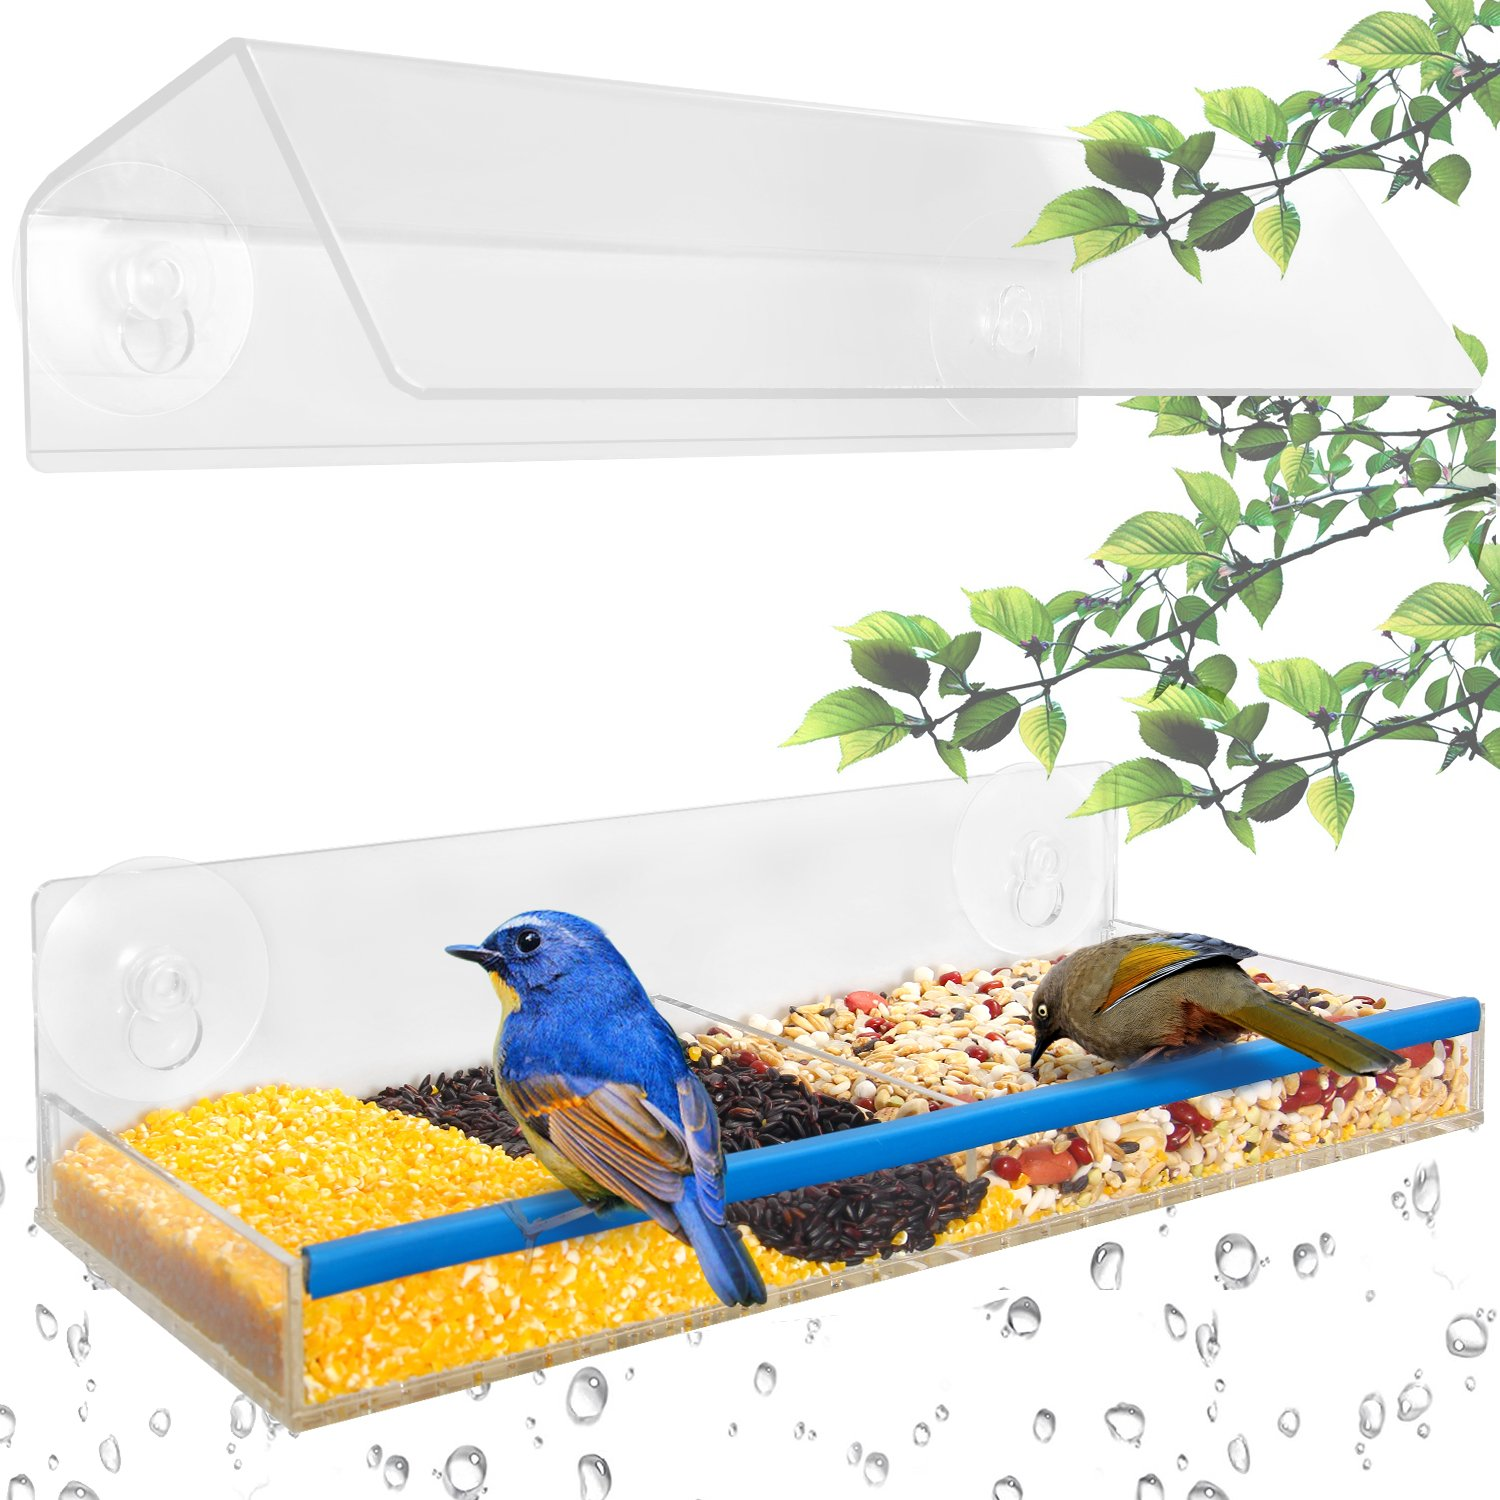 Ohuhu Best Birdwatching Window Bird Feeder, 2018 Unique Separation Design Acrylic Feeder, Adjustable Height Wild Windowsill Feeder W/Dual Compartment Tray, Suction Cups Easy Mount for All Weather